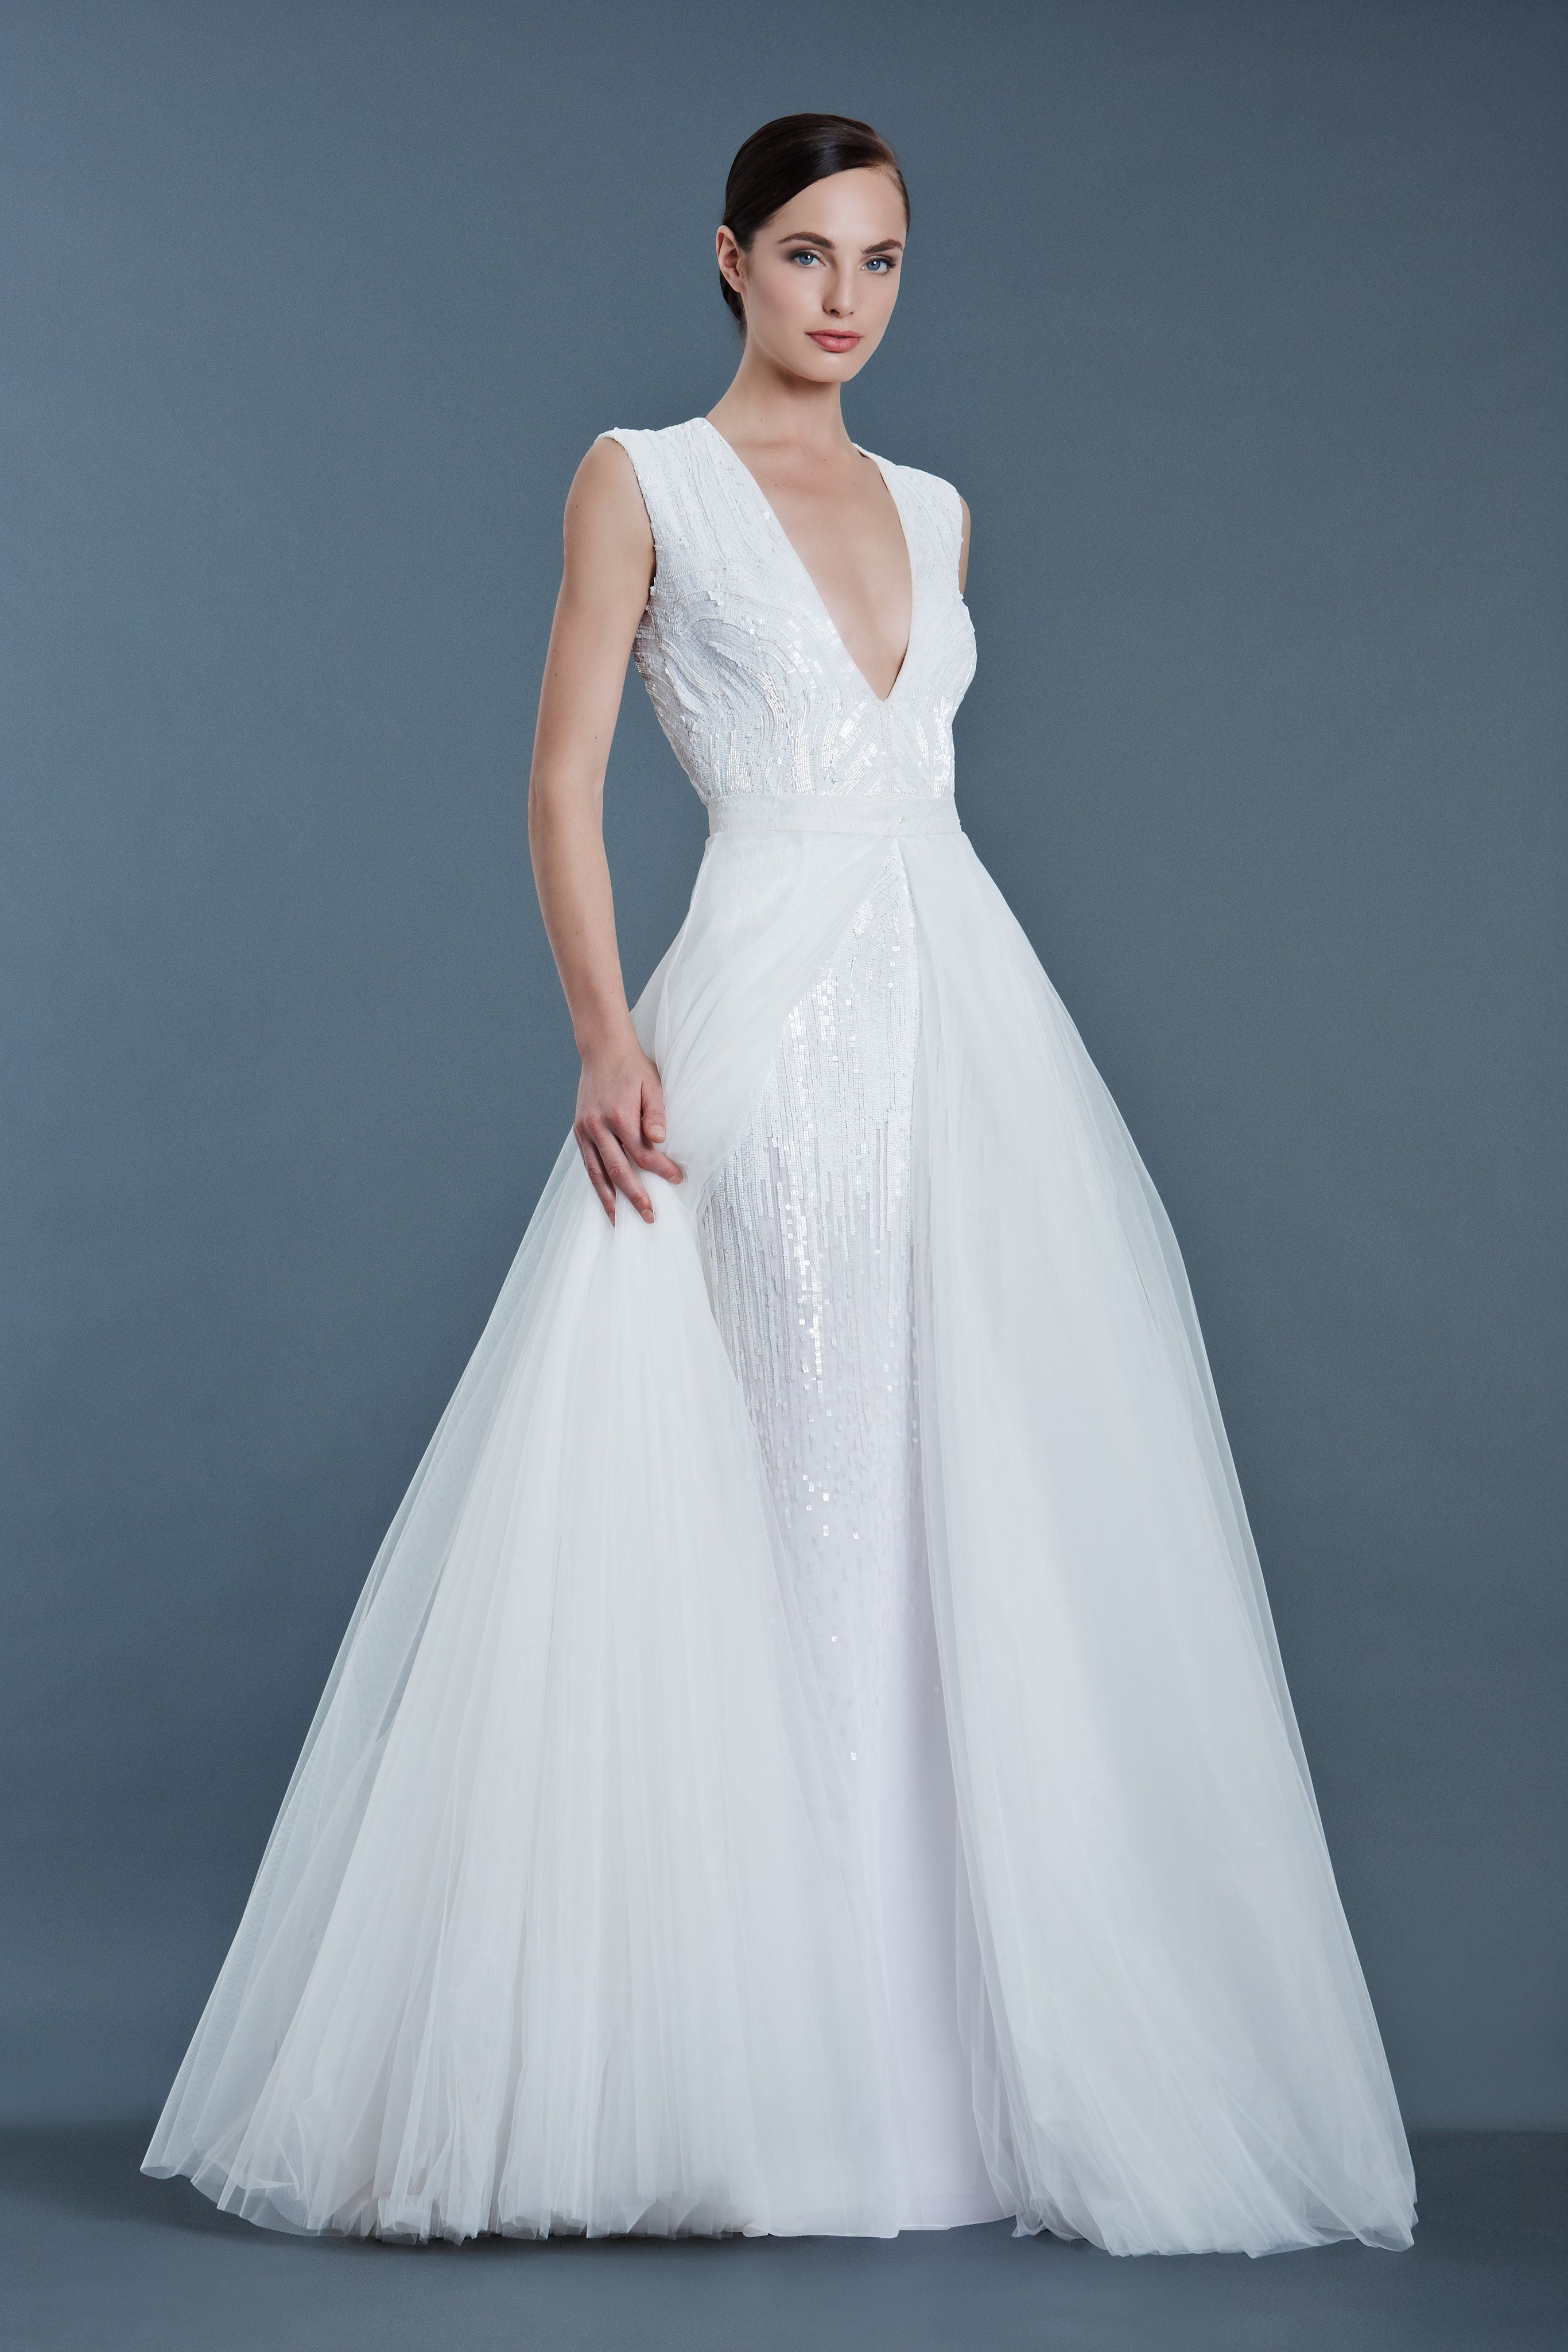 Magnificent Wedding Dress Shopping Games Picture Collection - All ...